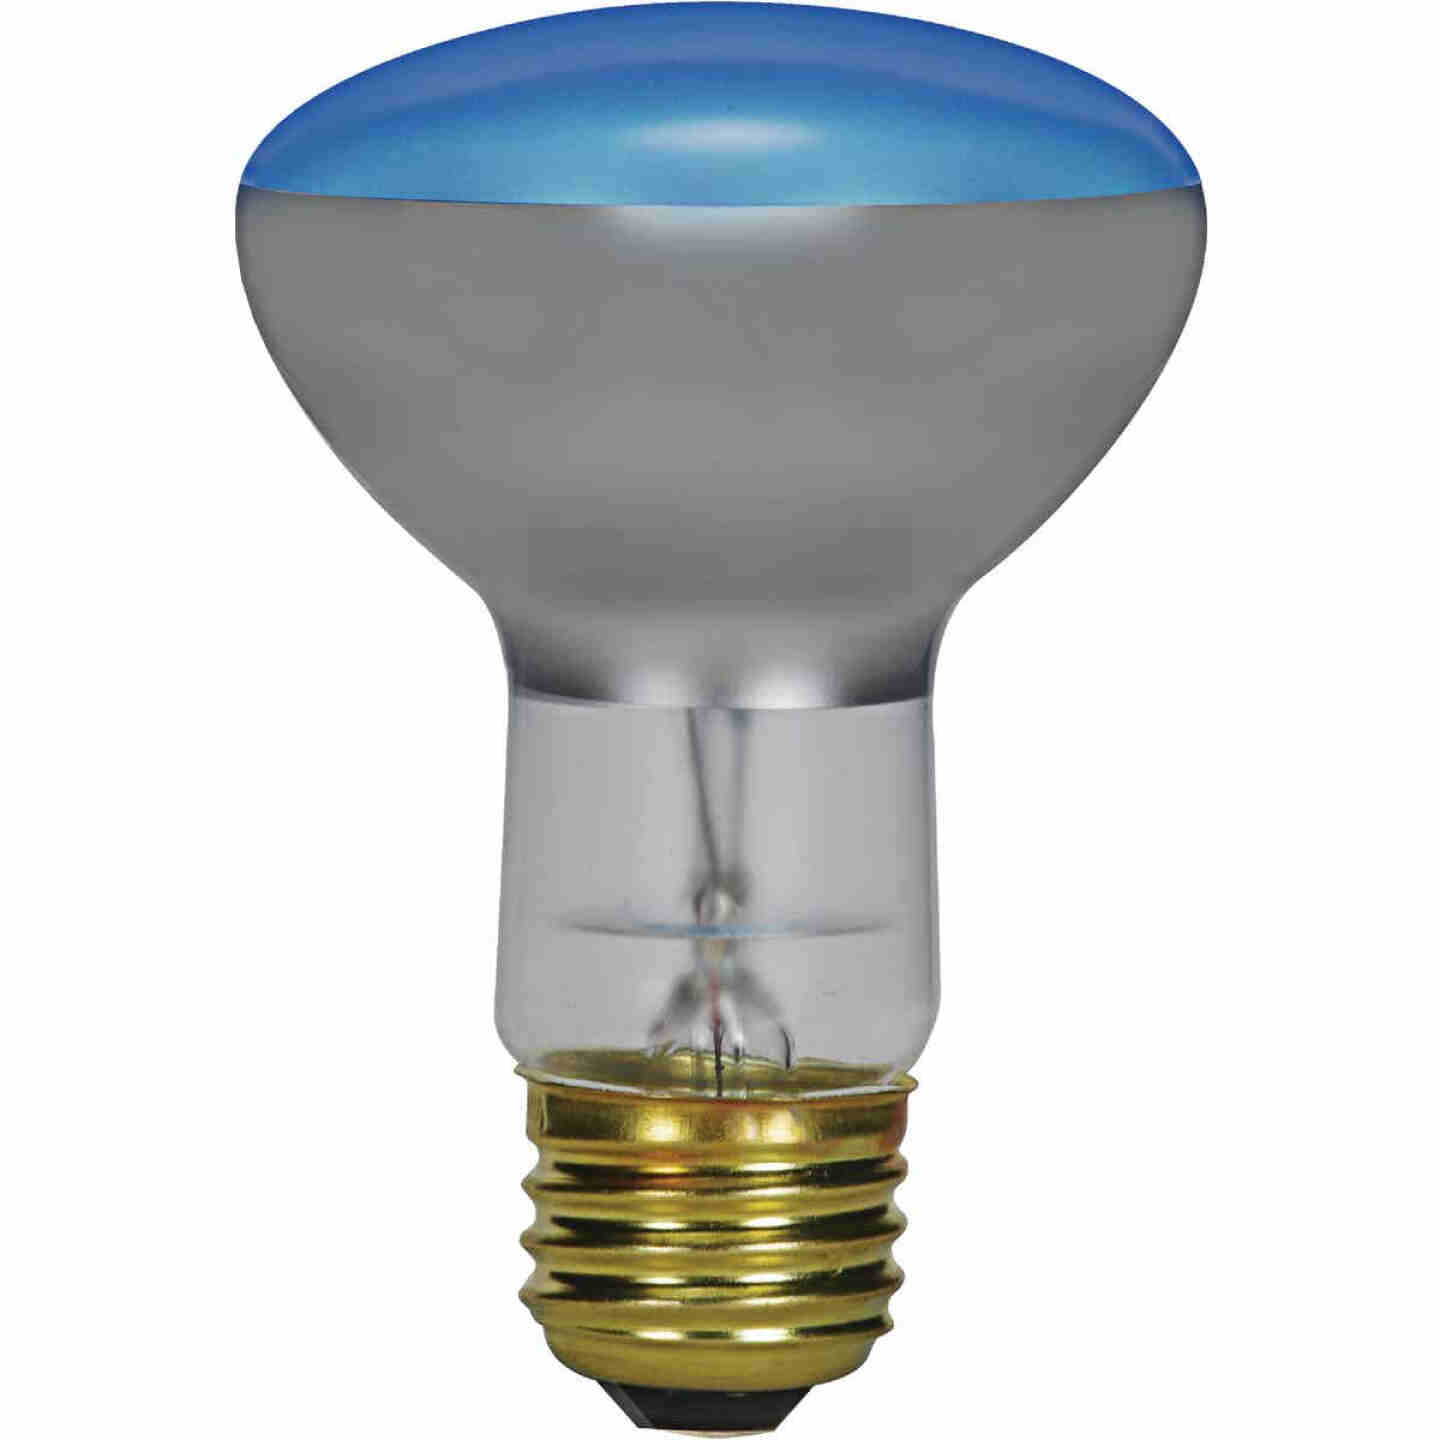 Satco 75W Frosted Medium Base R25 Incandescent Plant Light Bulb Image 1